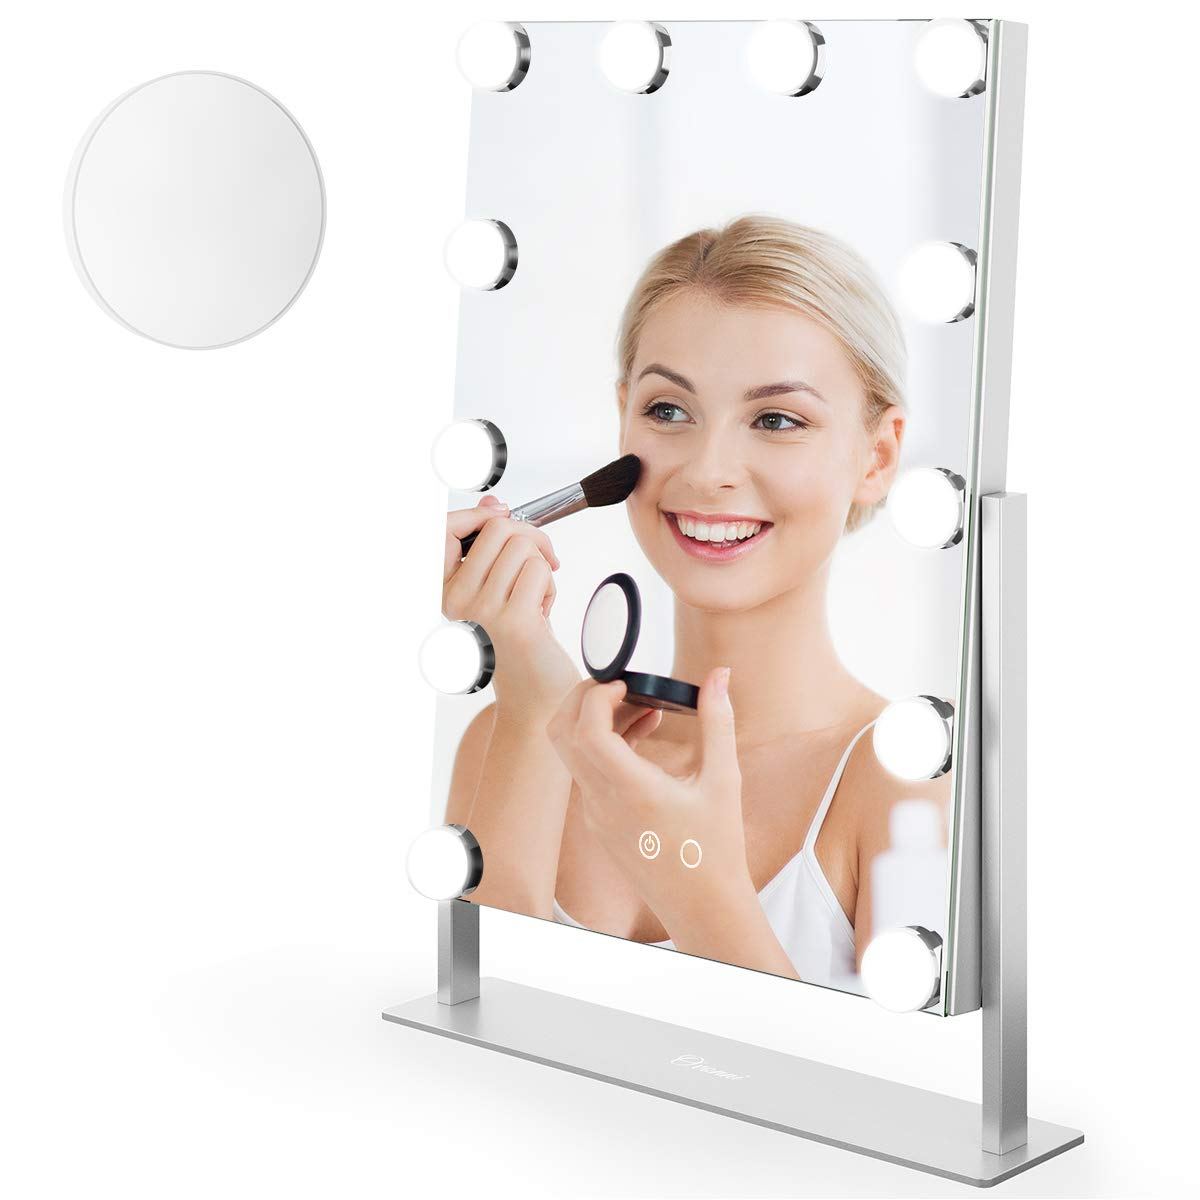 Ovonni Vanity Hollywood Makeup Mirror,10X Magnification Double-sided Dimmable Tabletop Cosmetic Mirror with 12 LED Bulbs,360°Rotating 2 Colors Light Touch Control Memory Mode and Plug Powered, Silver